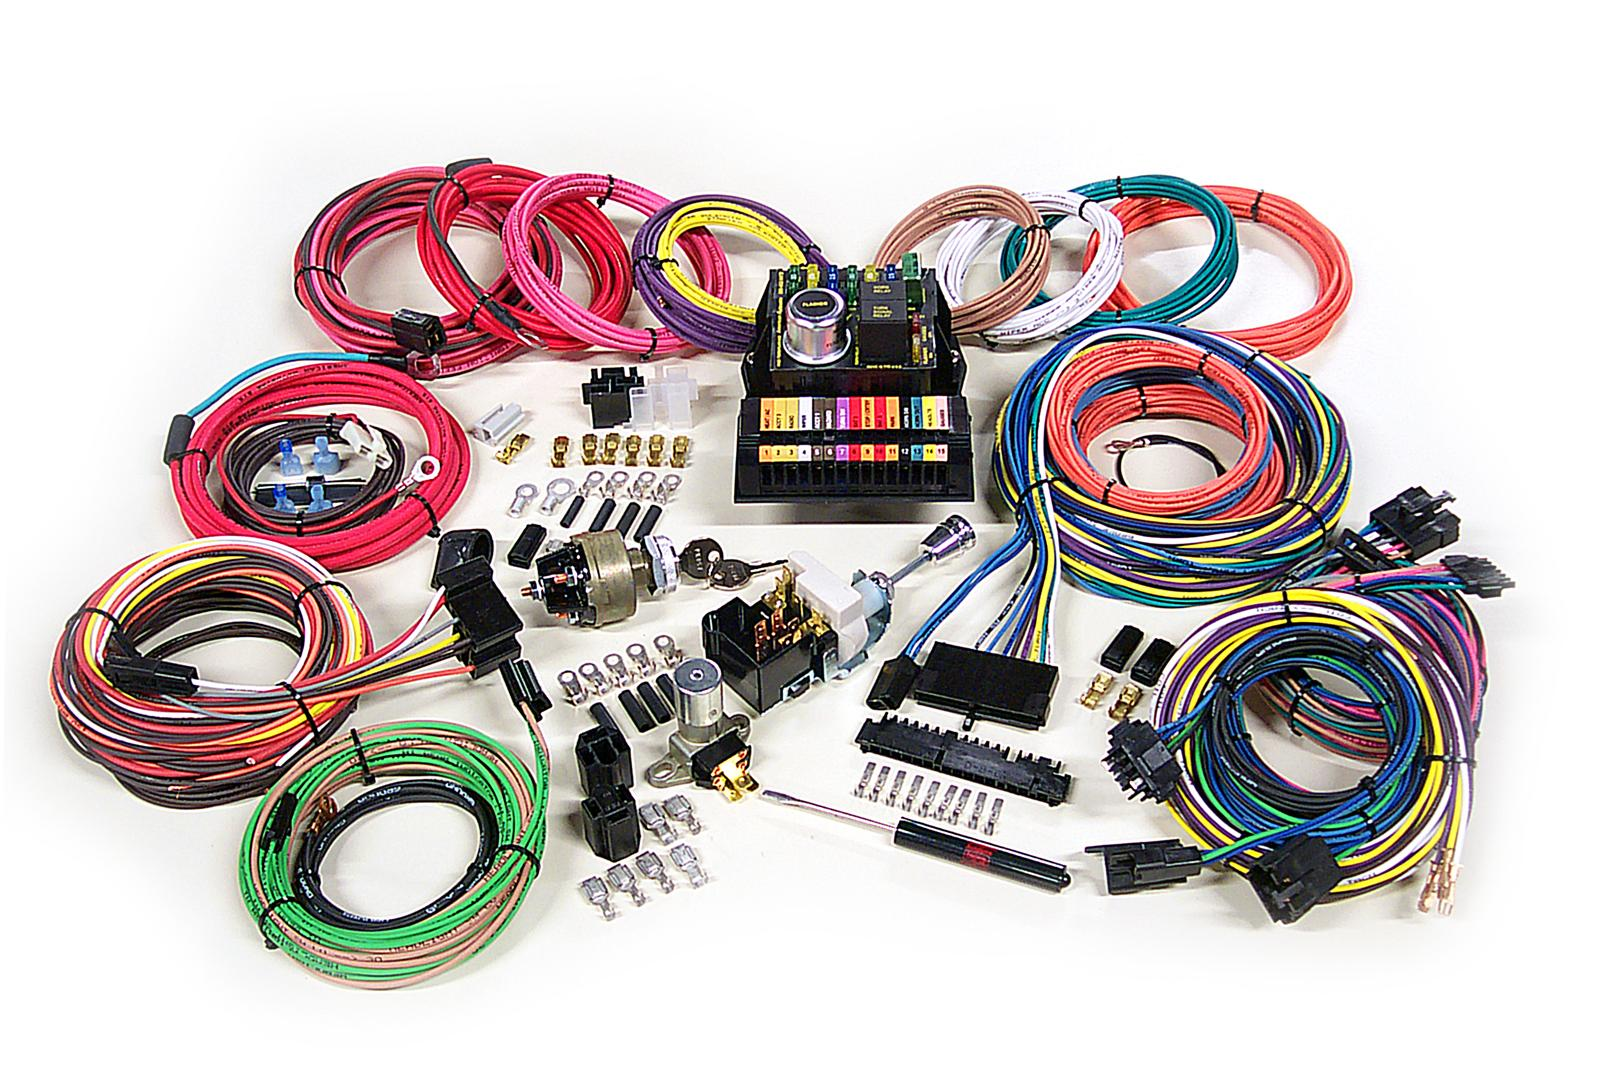 hight resolution of ford wiring harness kit wiring diagram blogs 1978 ford truck wiring harness ford auto wiring harness